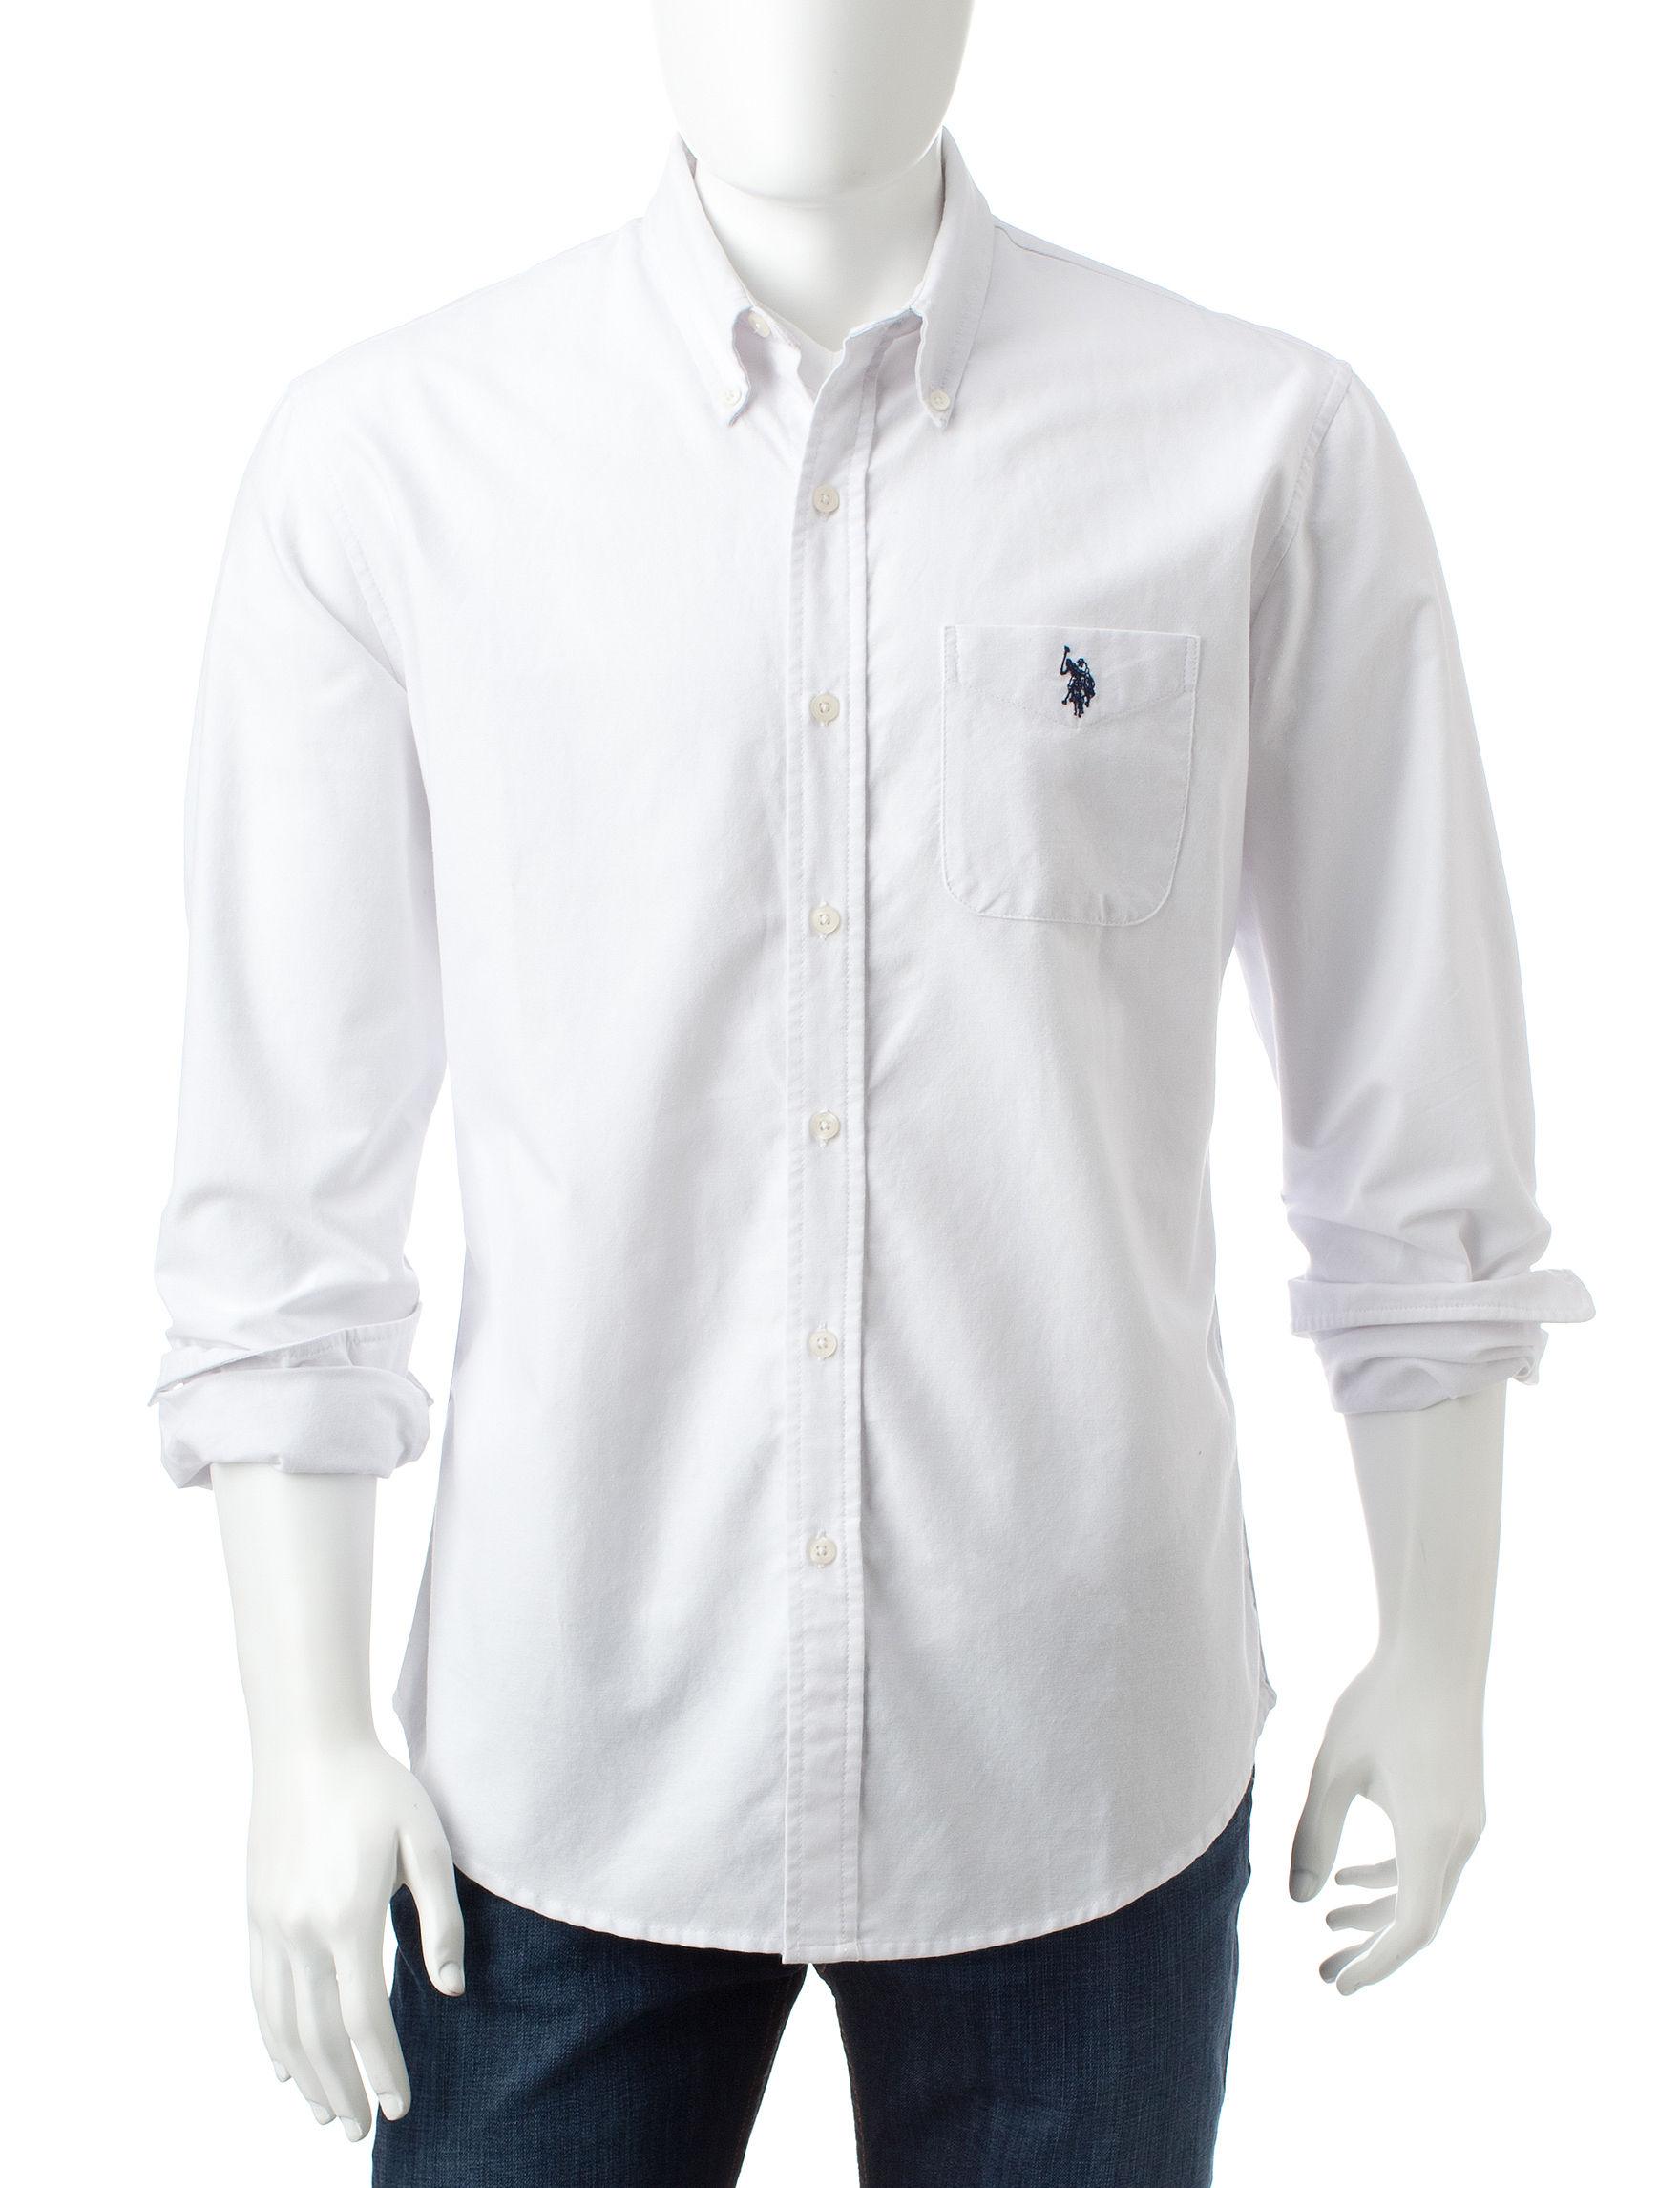 U.S. Polo Assn. White Casual Button Down Shirts